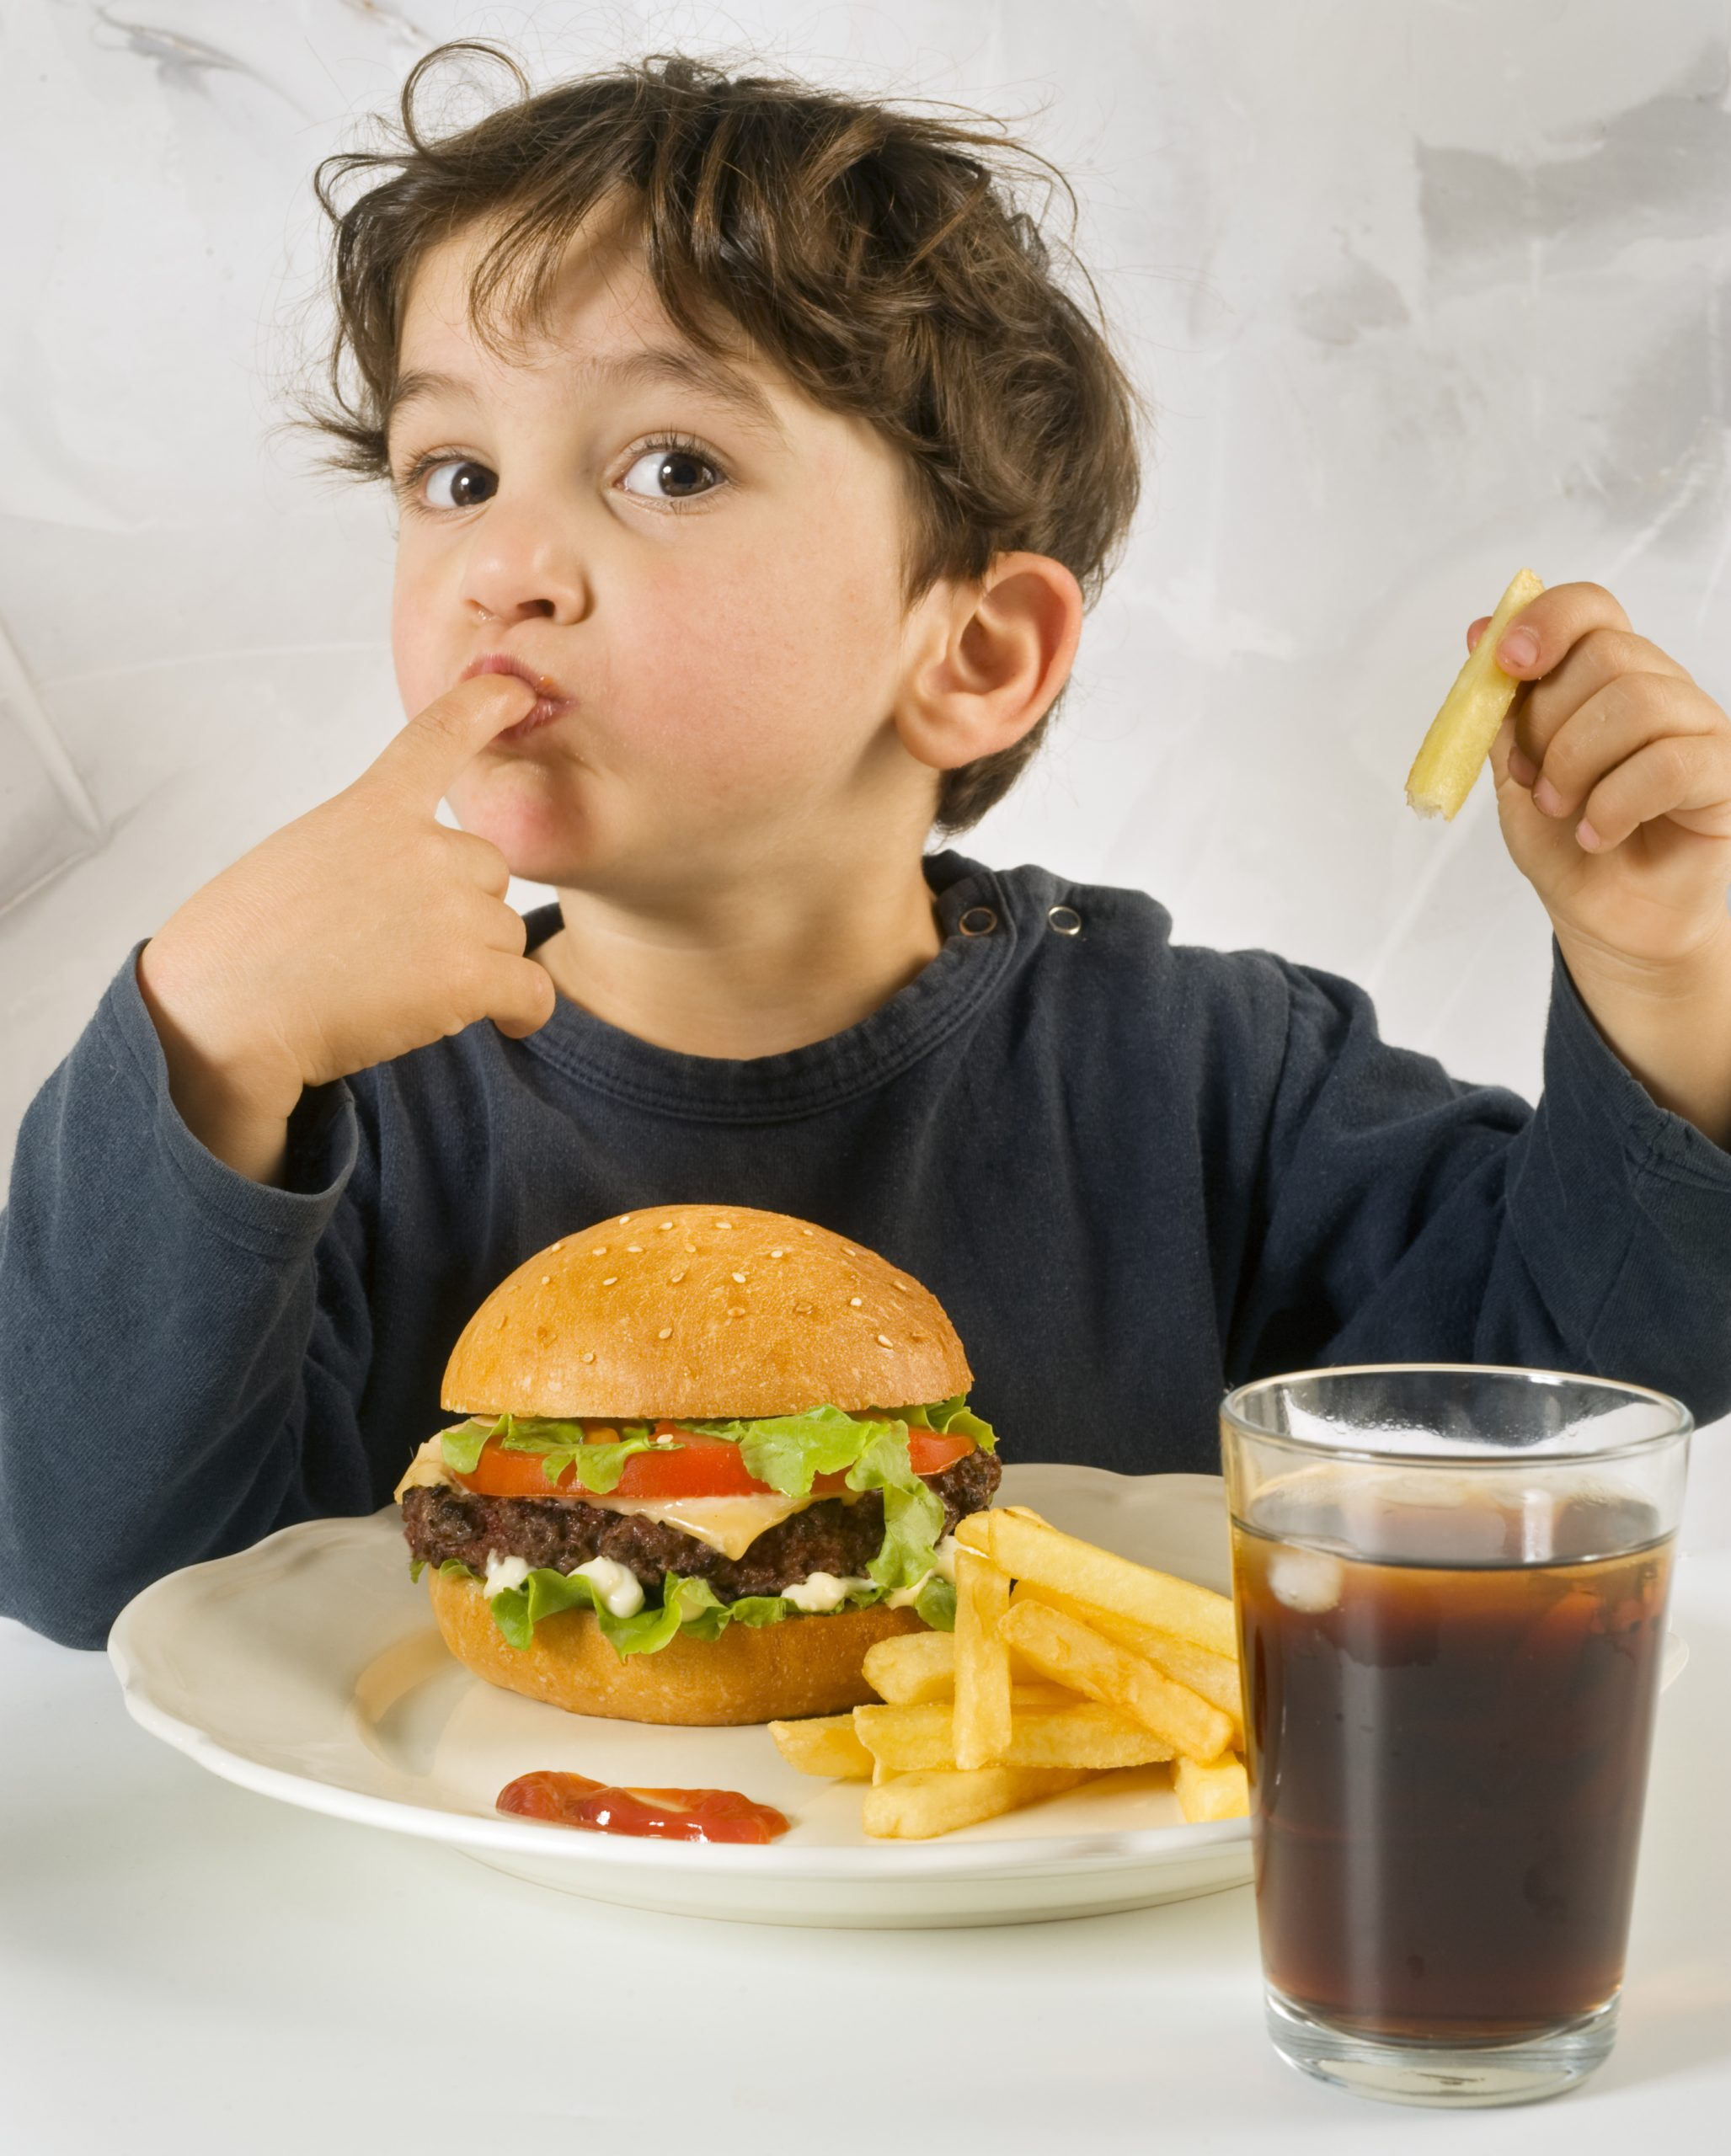 Young boy eating fast food